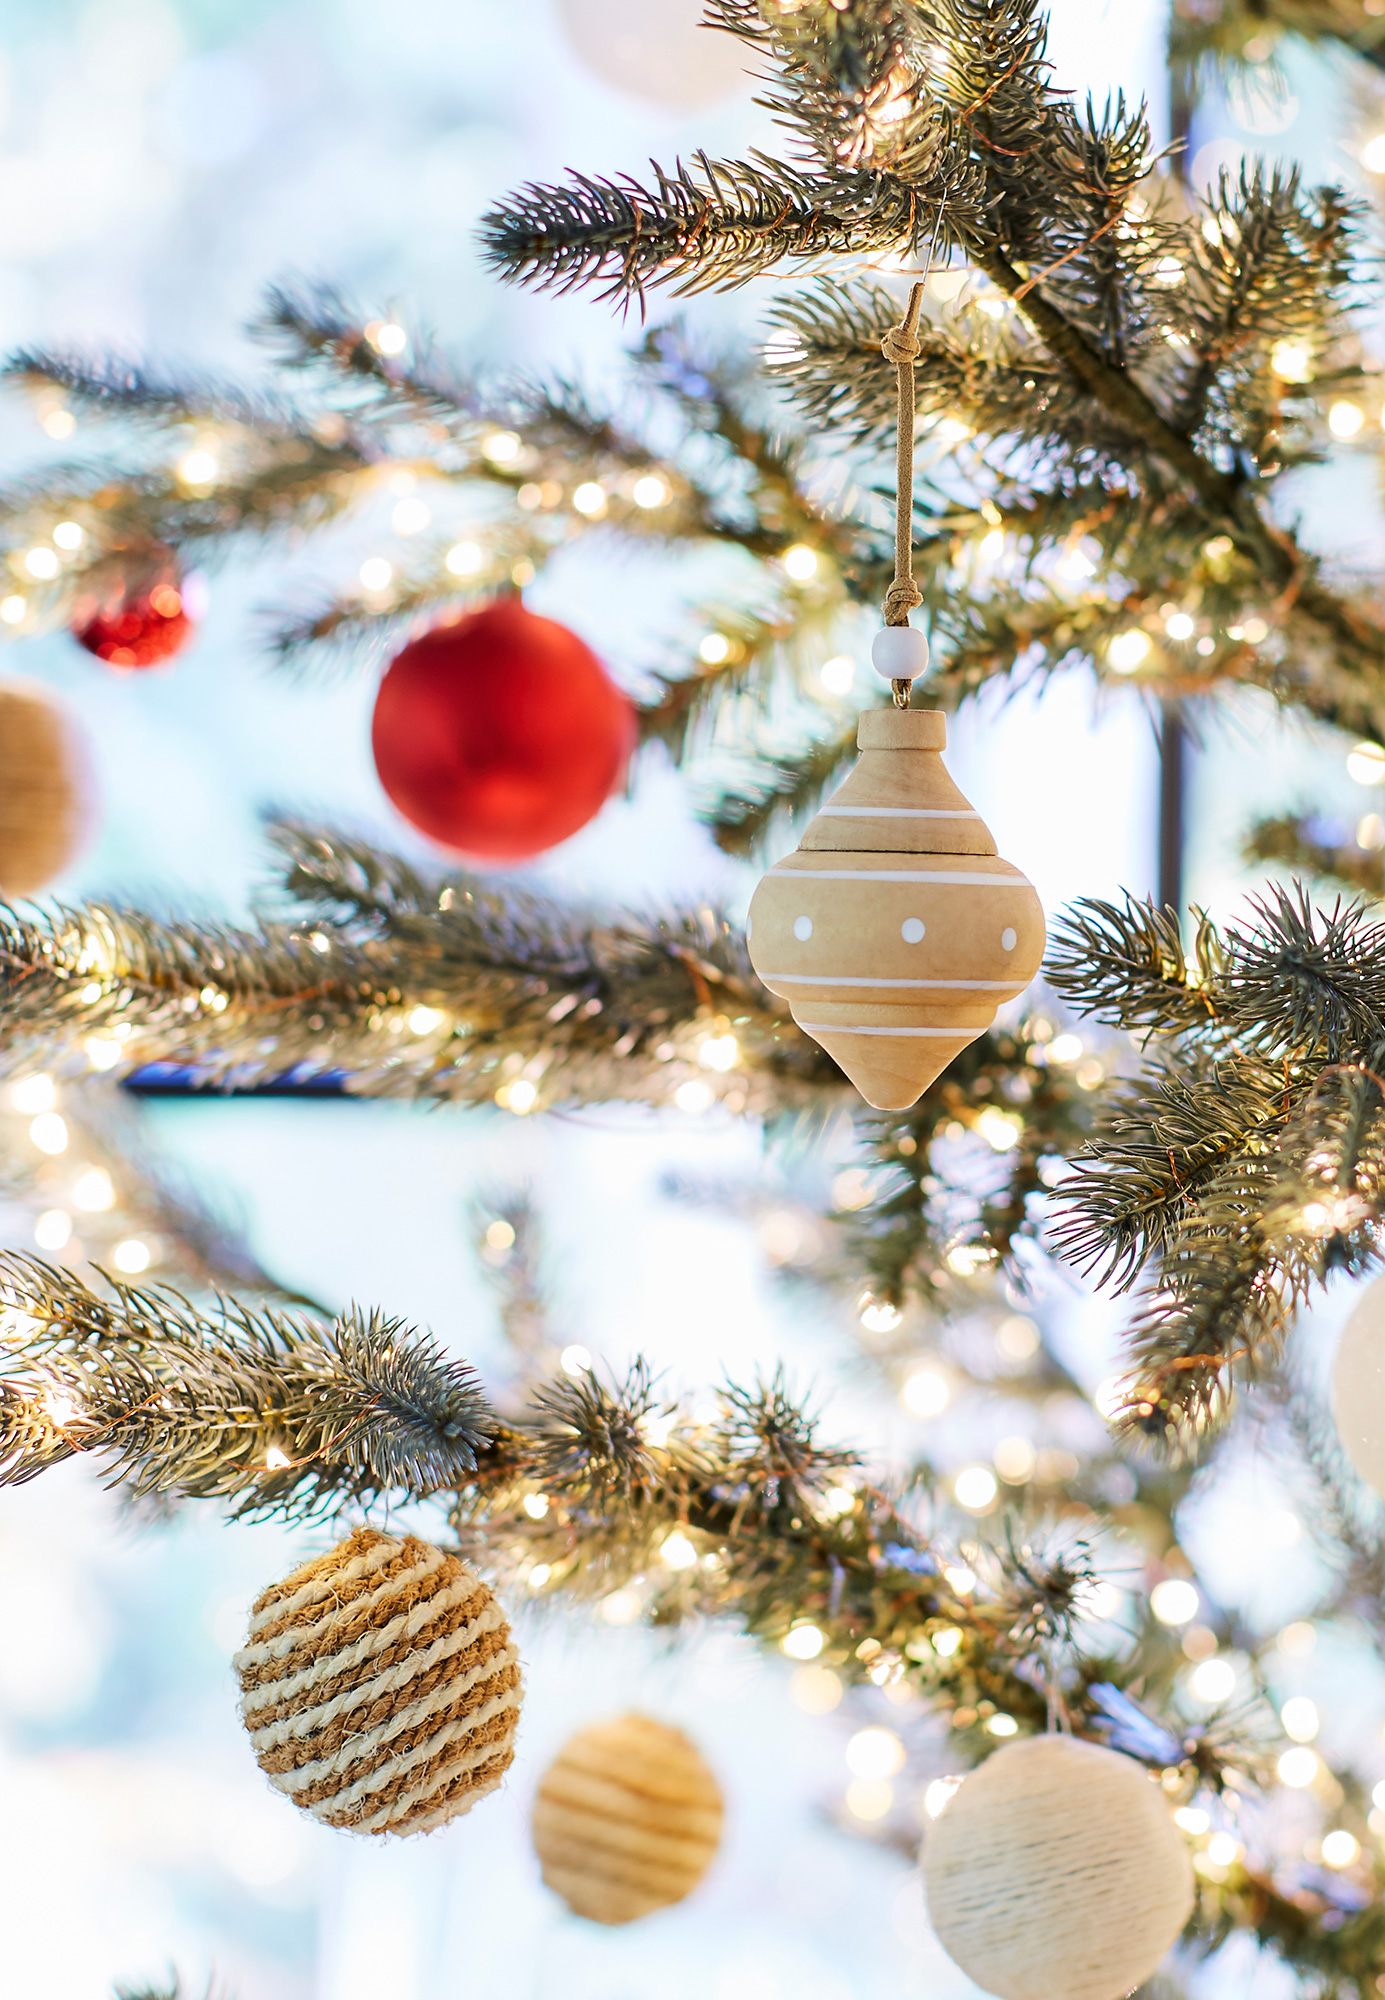 emily-henderson-target-holiday-decor-ornaments